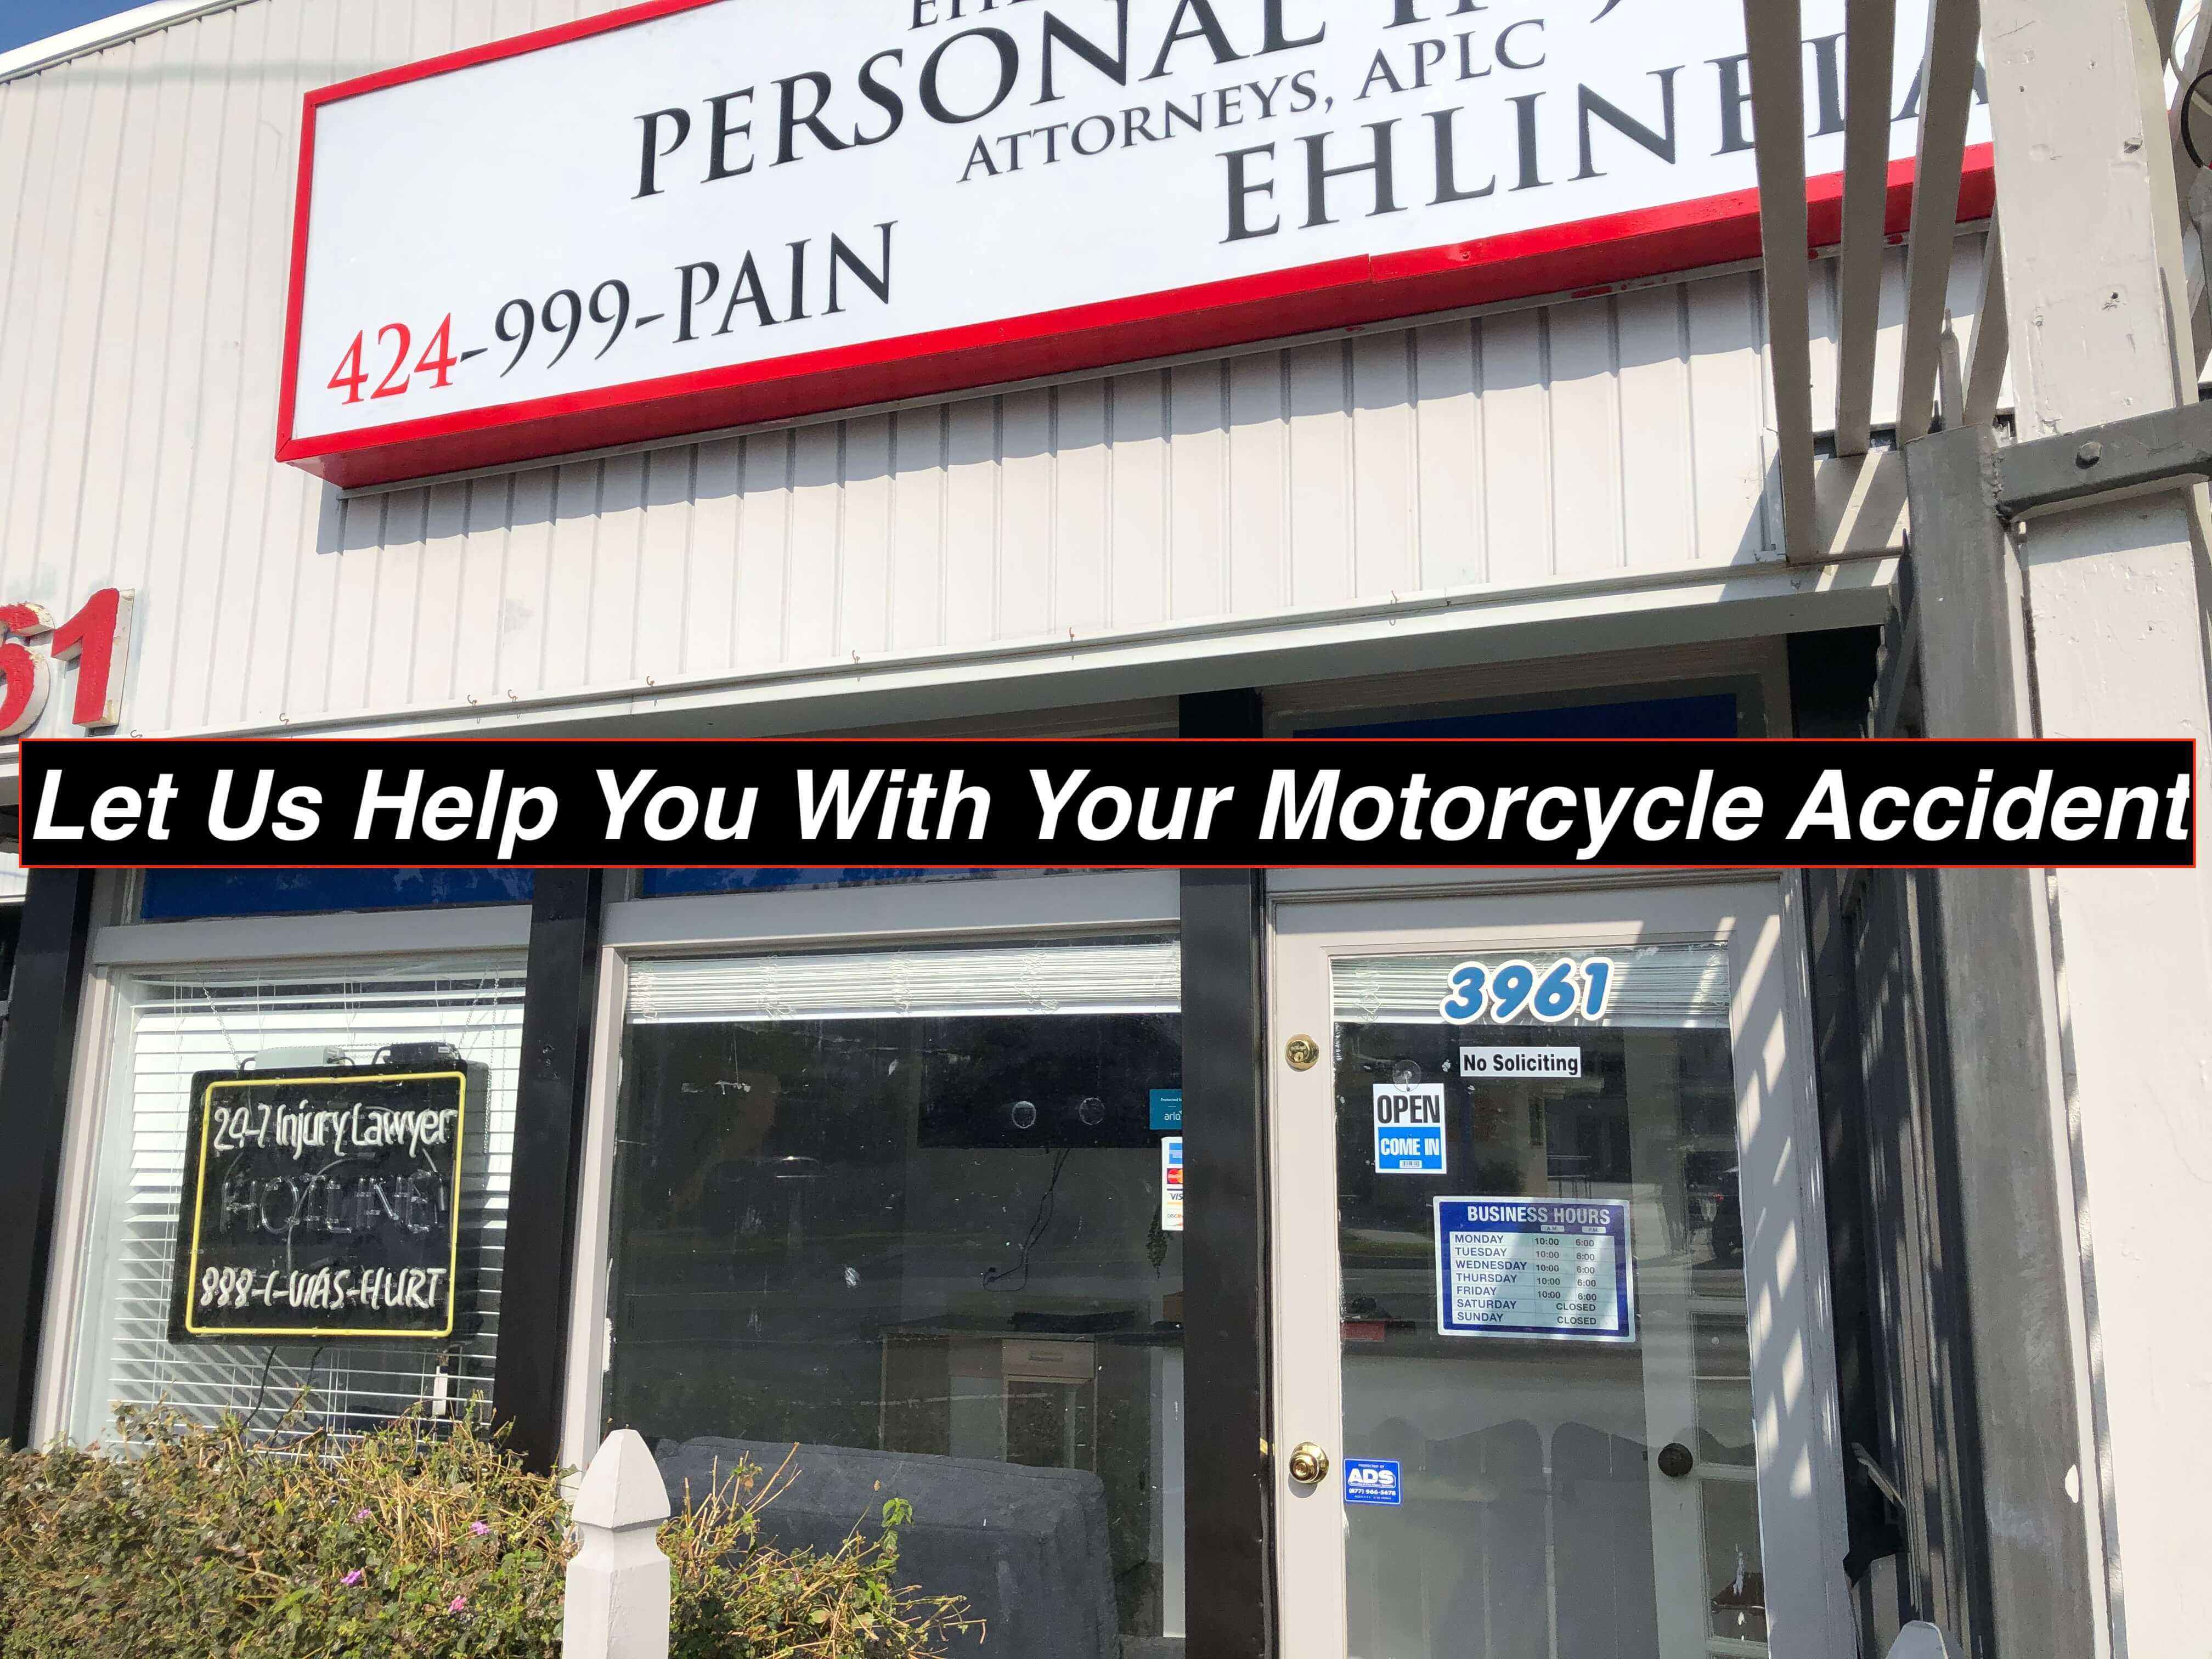 Convenient Coast Highway location for all your injury law needs.